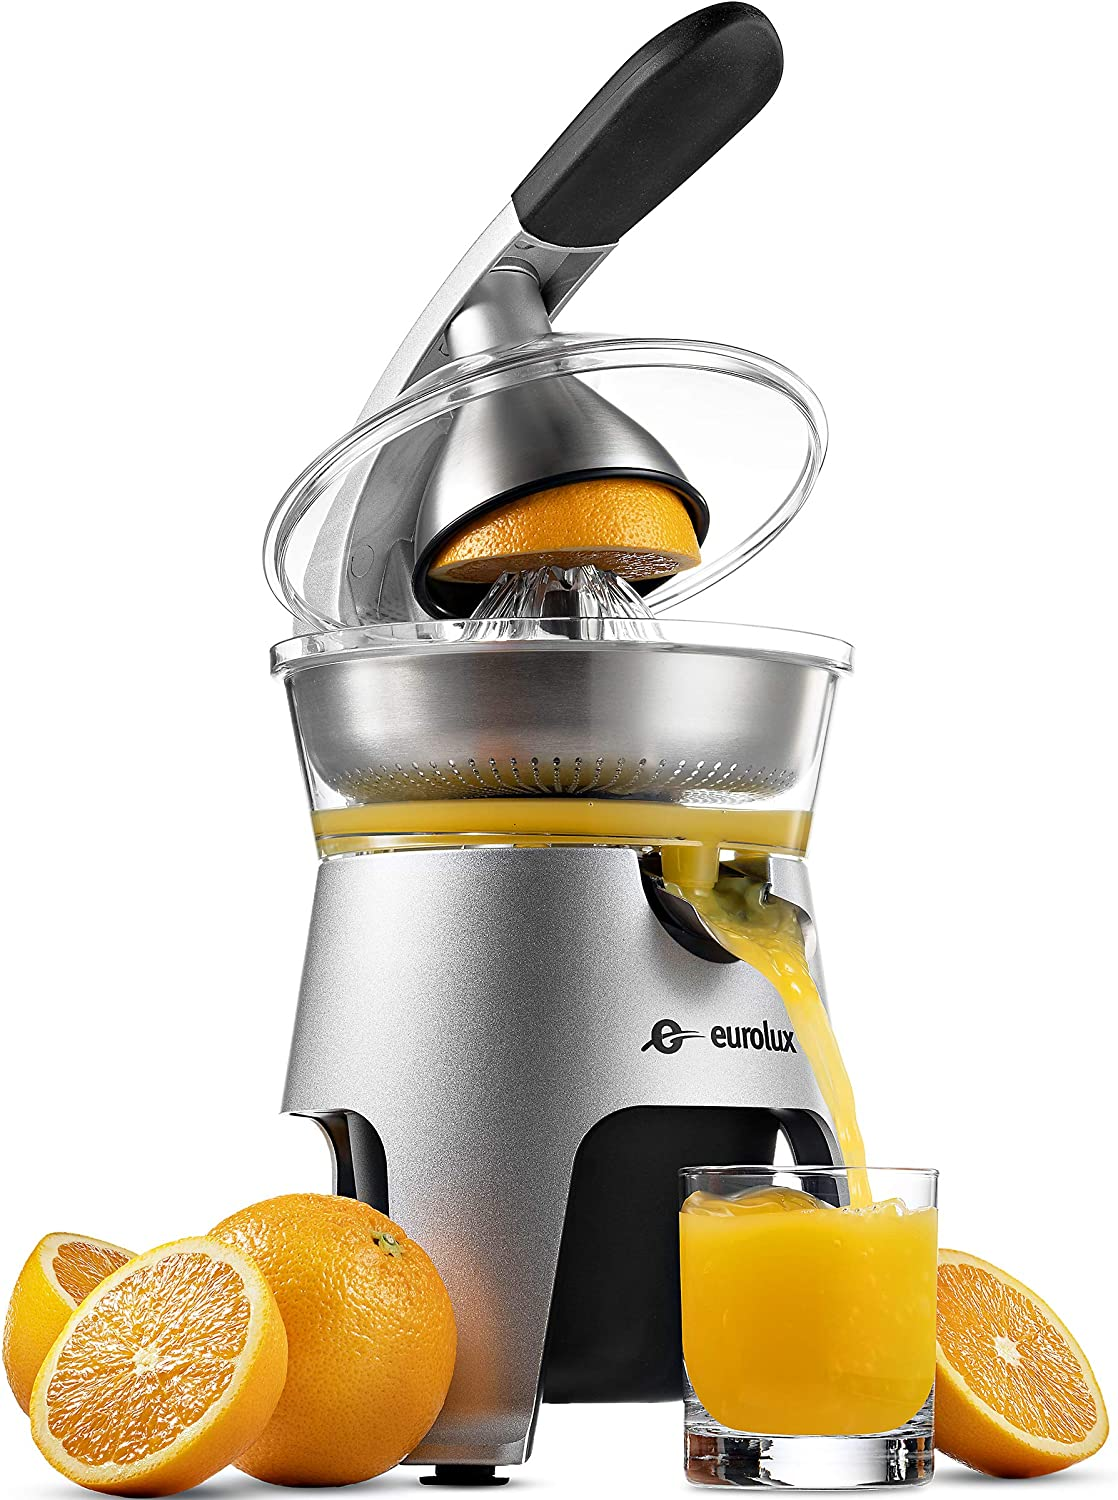 Eurolux Die Cast Stainless Steel Electric Citrus Juicer Squeezer, for Orange, Lemon, Grapefruit | 300 Watts of Power, With 2 Stainless Steel Filter Sizes for Pulp Control